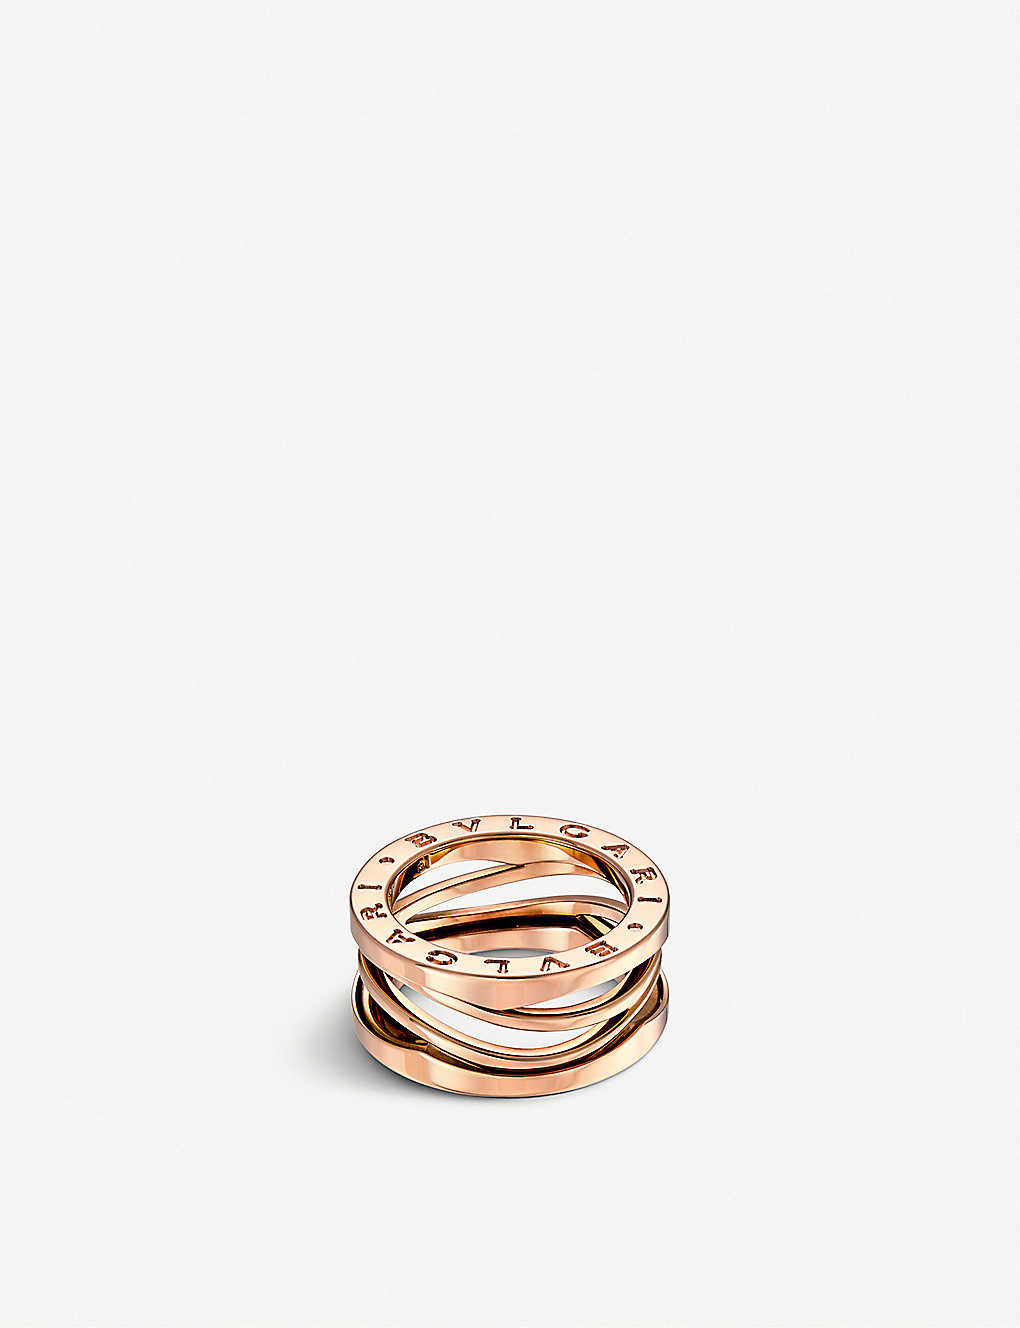 BVLGARI: B.zero1 Zaha Hadid three band 18ct pink-gold ring